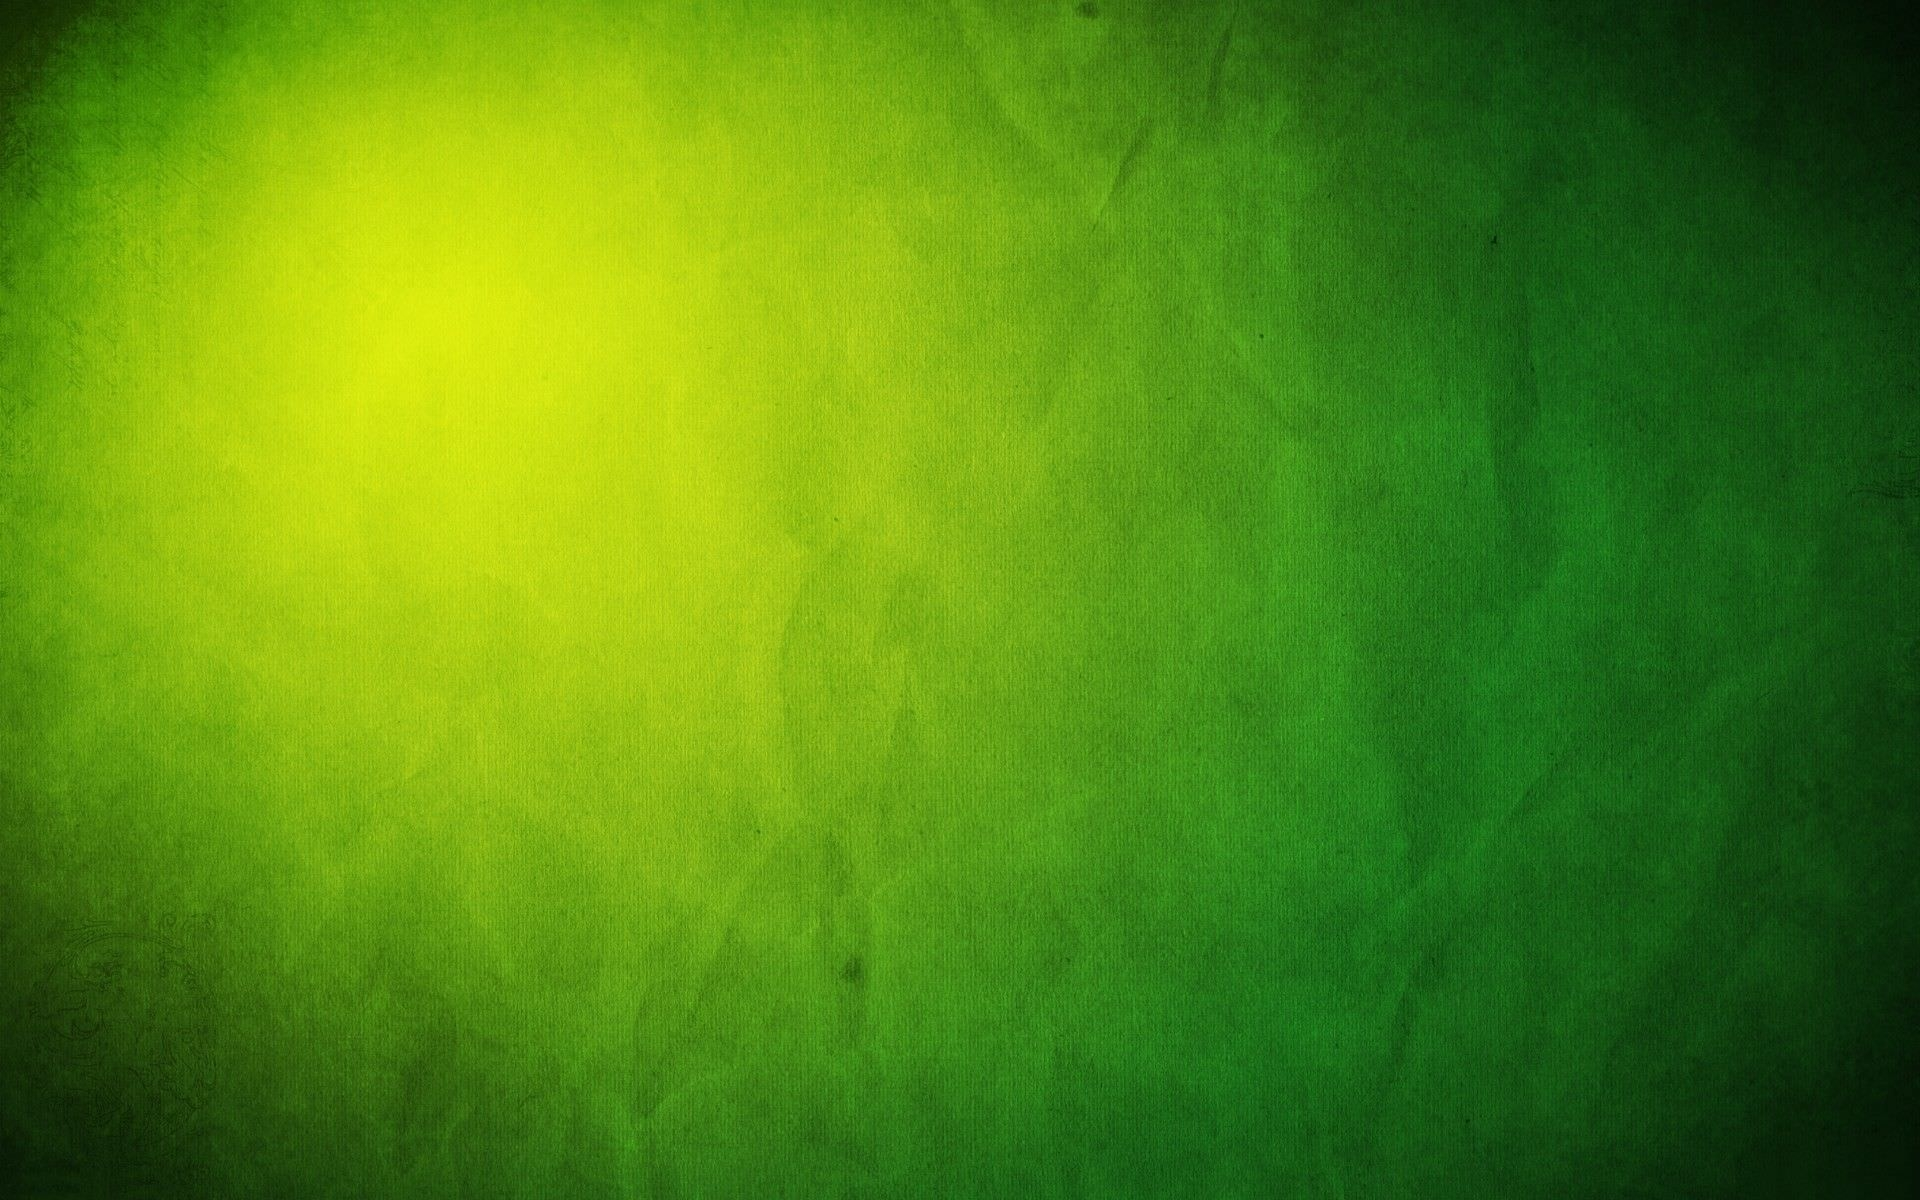 21  green textured backgrounds  wallpapers  pictures